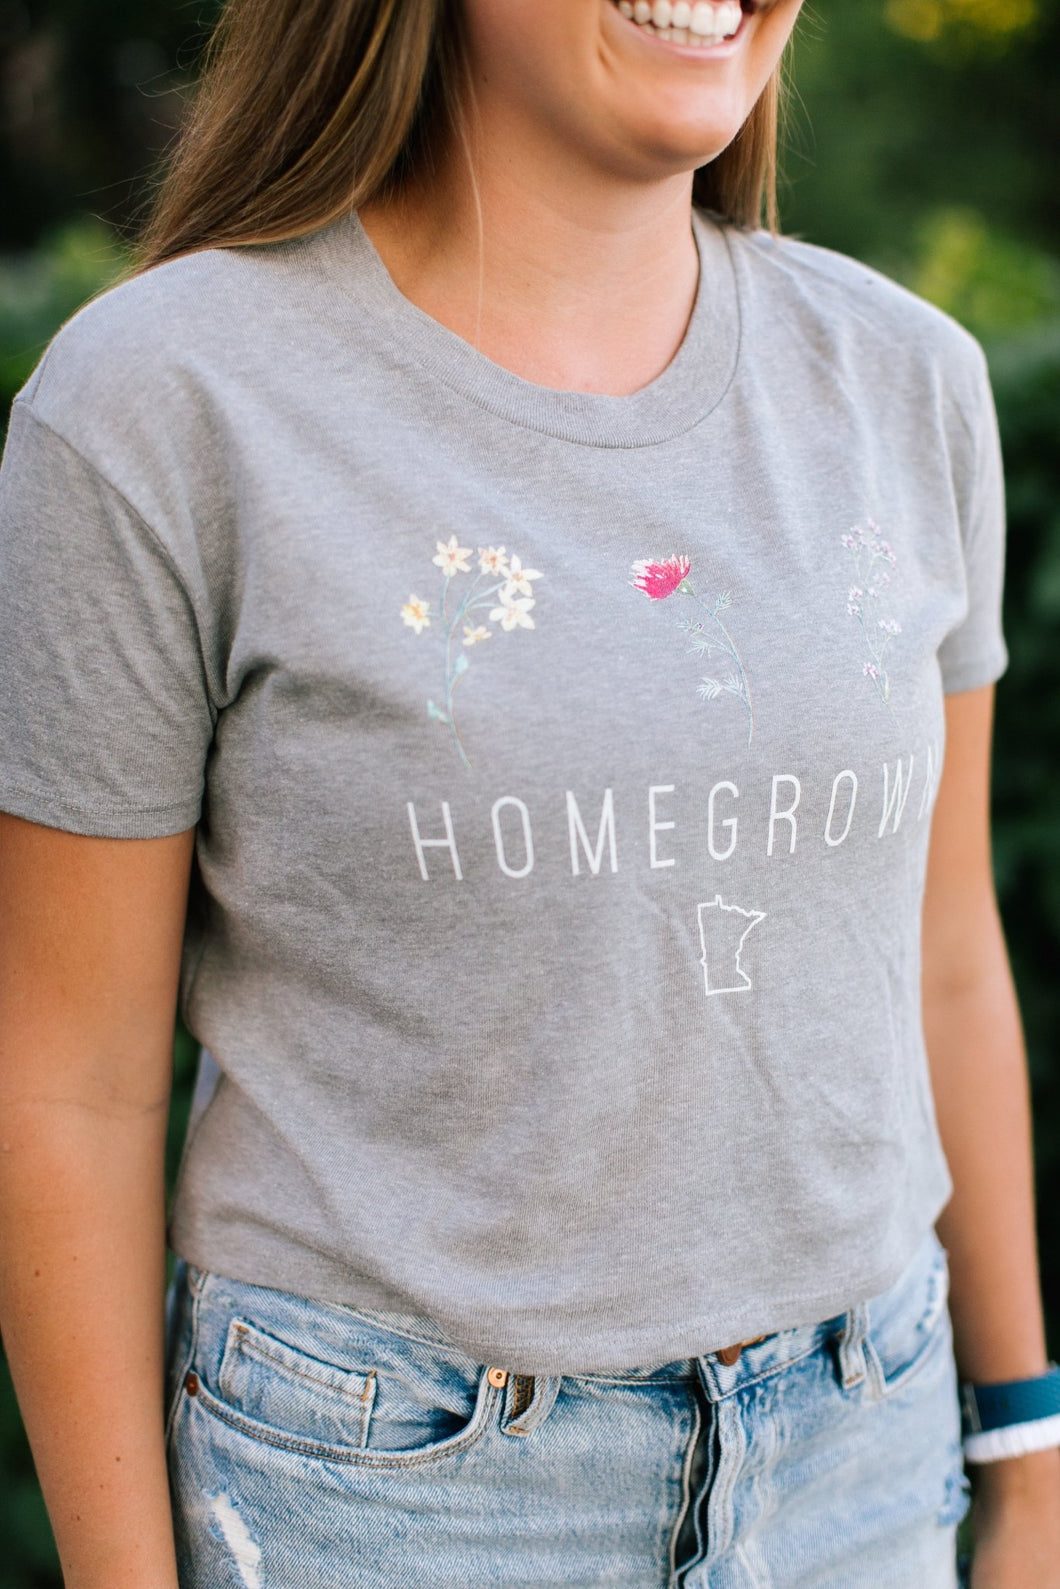 Homegrown Cropped Tee - Fan Girl MN